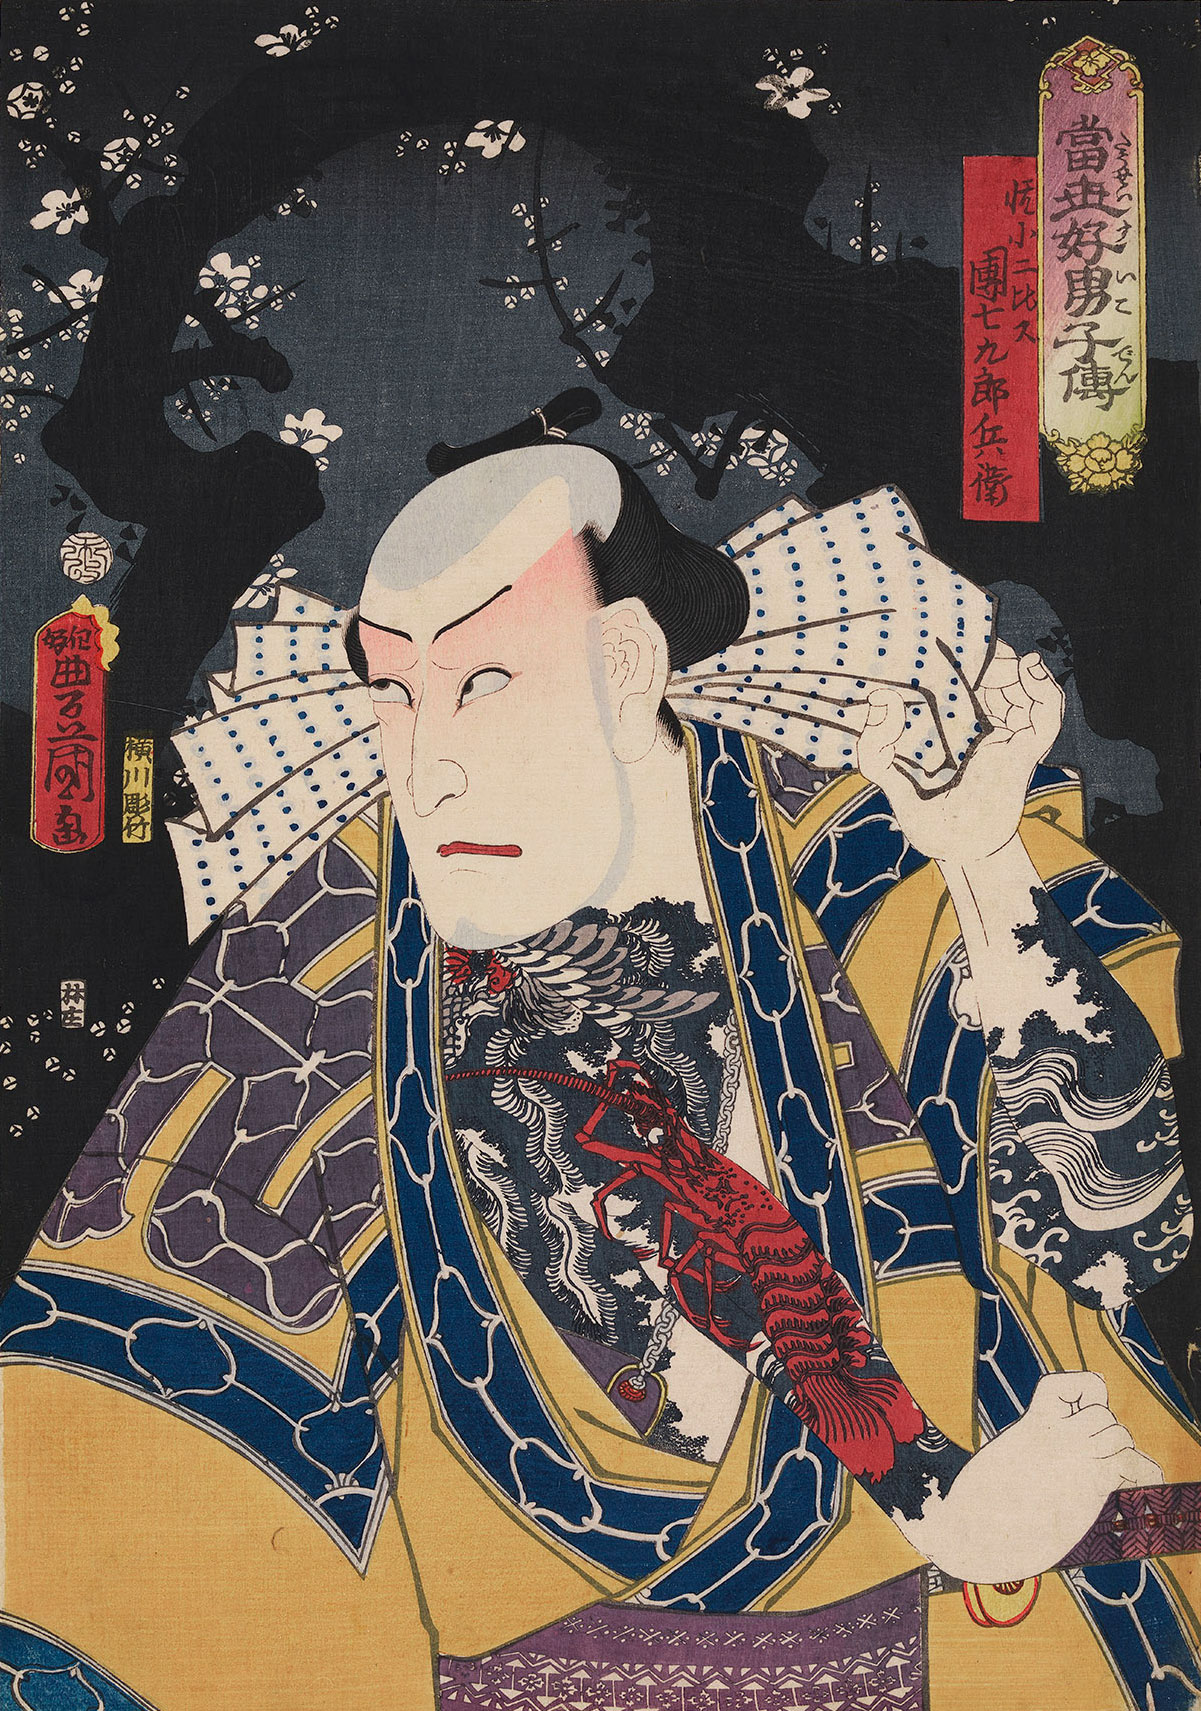 """This print from the """"Plum"""" tryptich in """"A Contemporary Water Margin"""" by Utagawa Kunisada I, c. 1859, depicts actor Ichikawa Kodanji IV dressed for the role of Danshichi Kurobei, a fishmonger.©<a href=""""http://www.mfa.org/"""">Museum of Fine Arts, Boston</a>."""